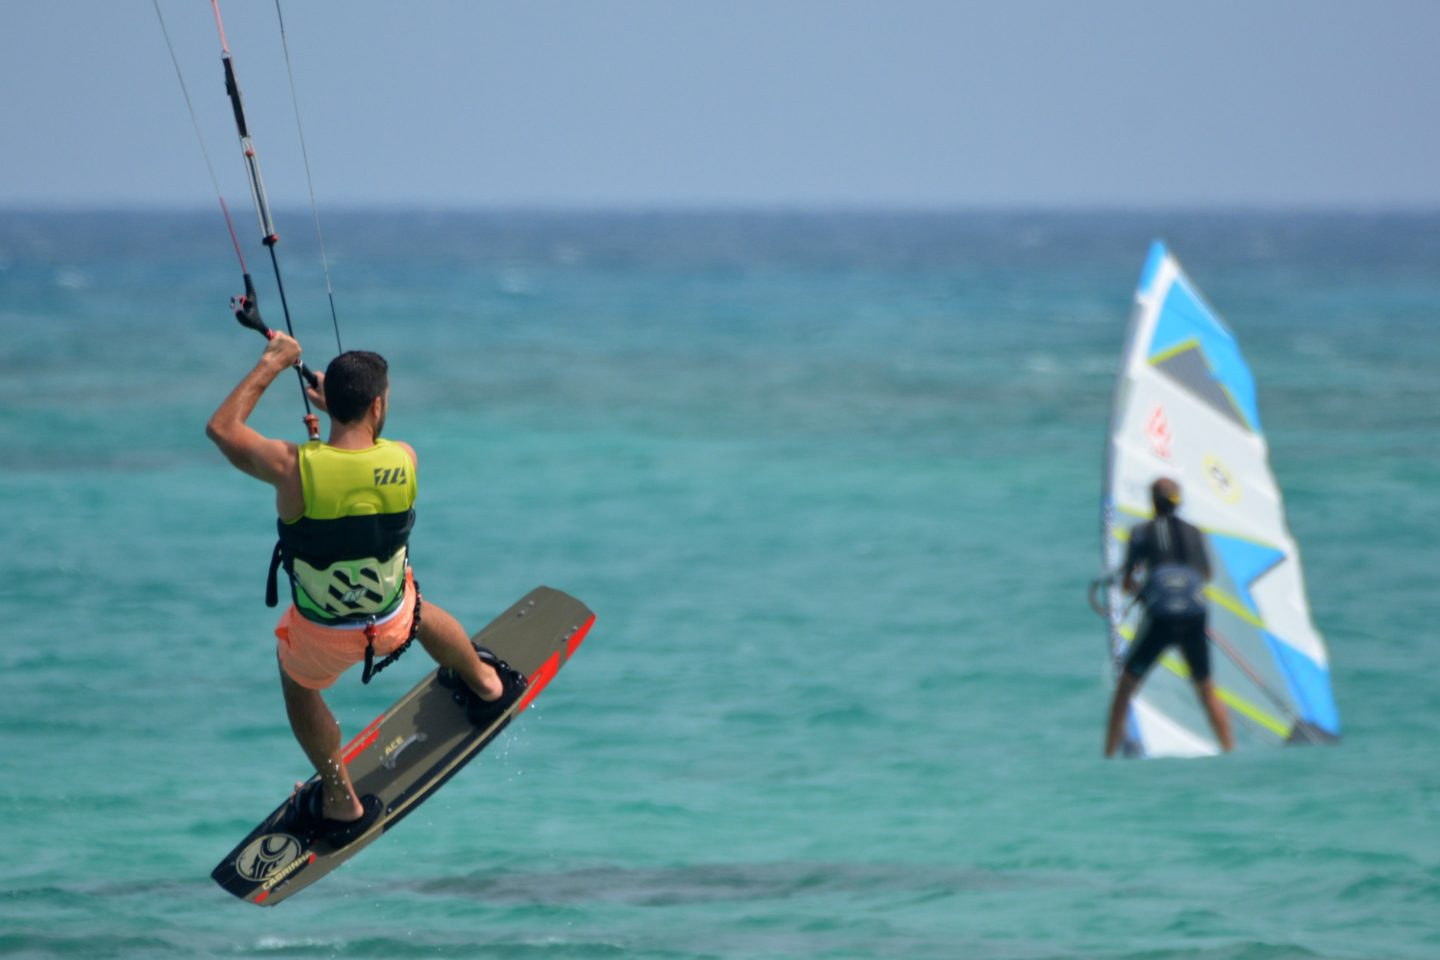 Windsurfing 101: Today's Top Tips, Tech and Tools for Beginners